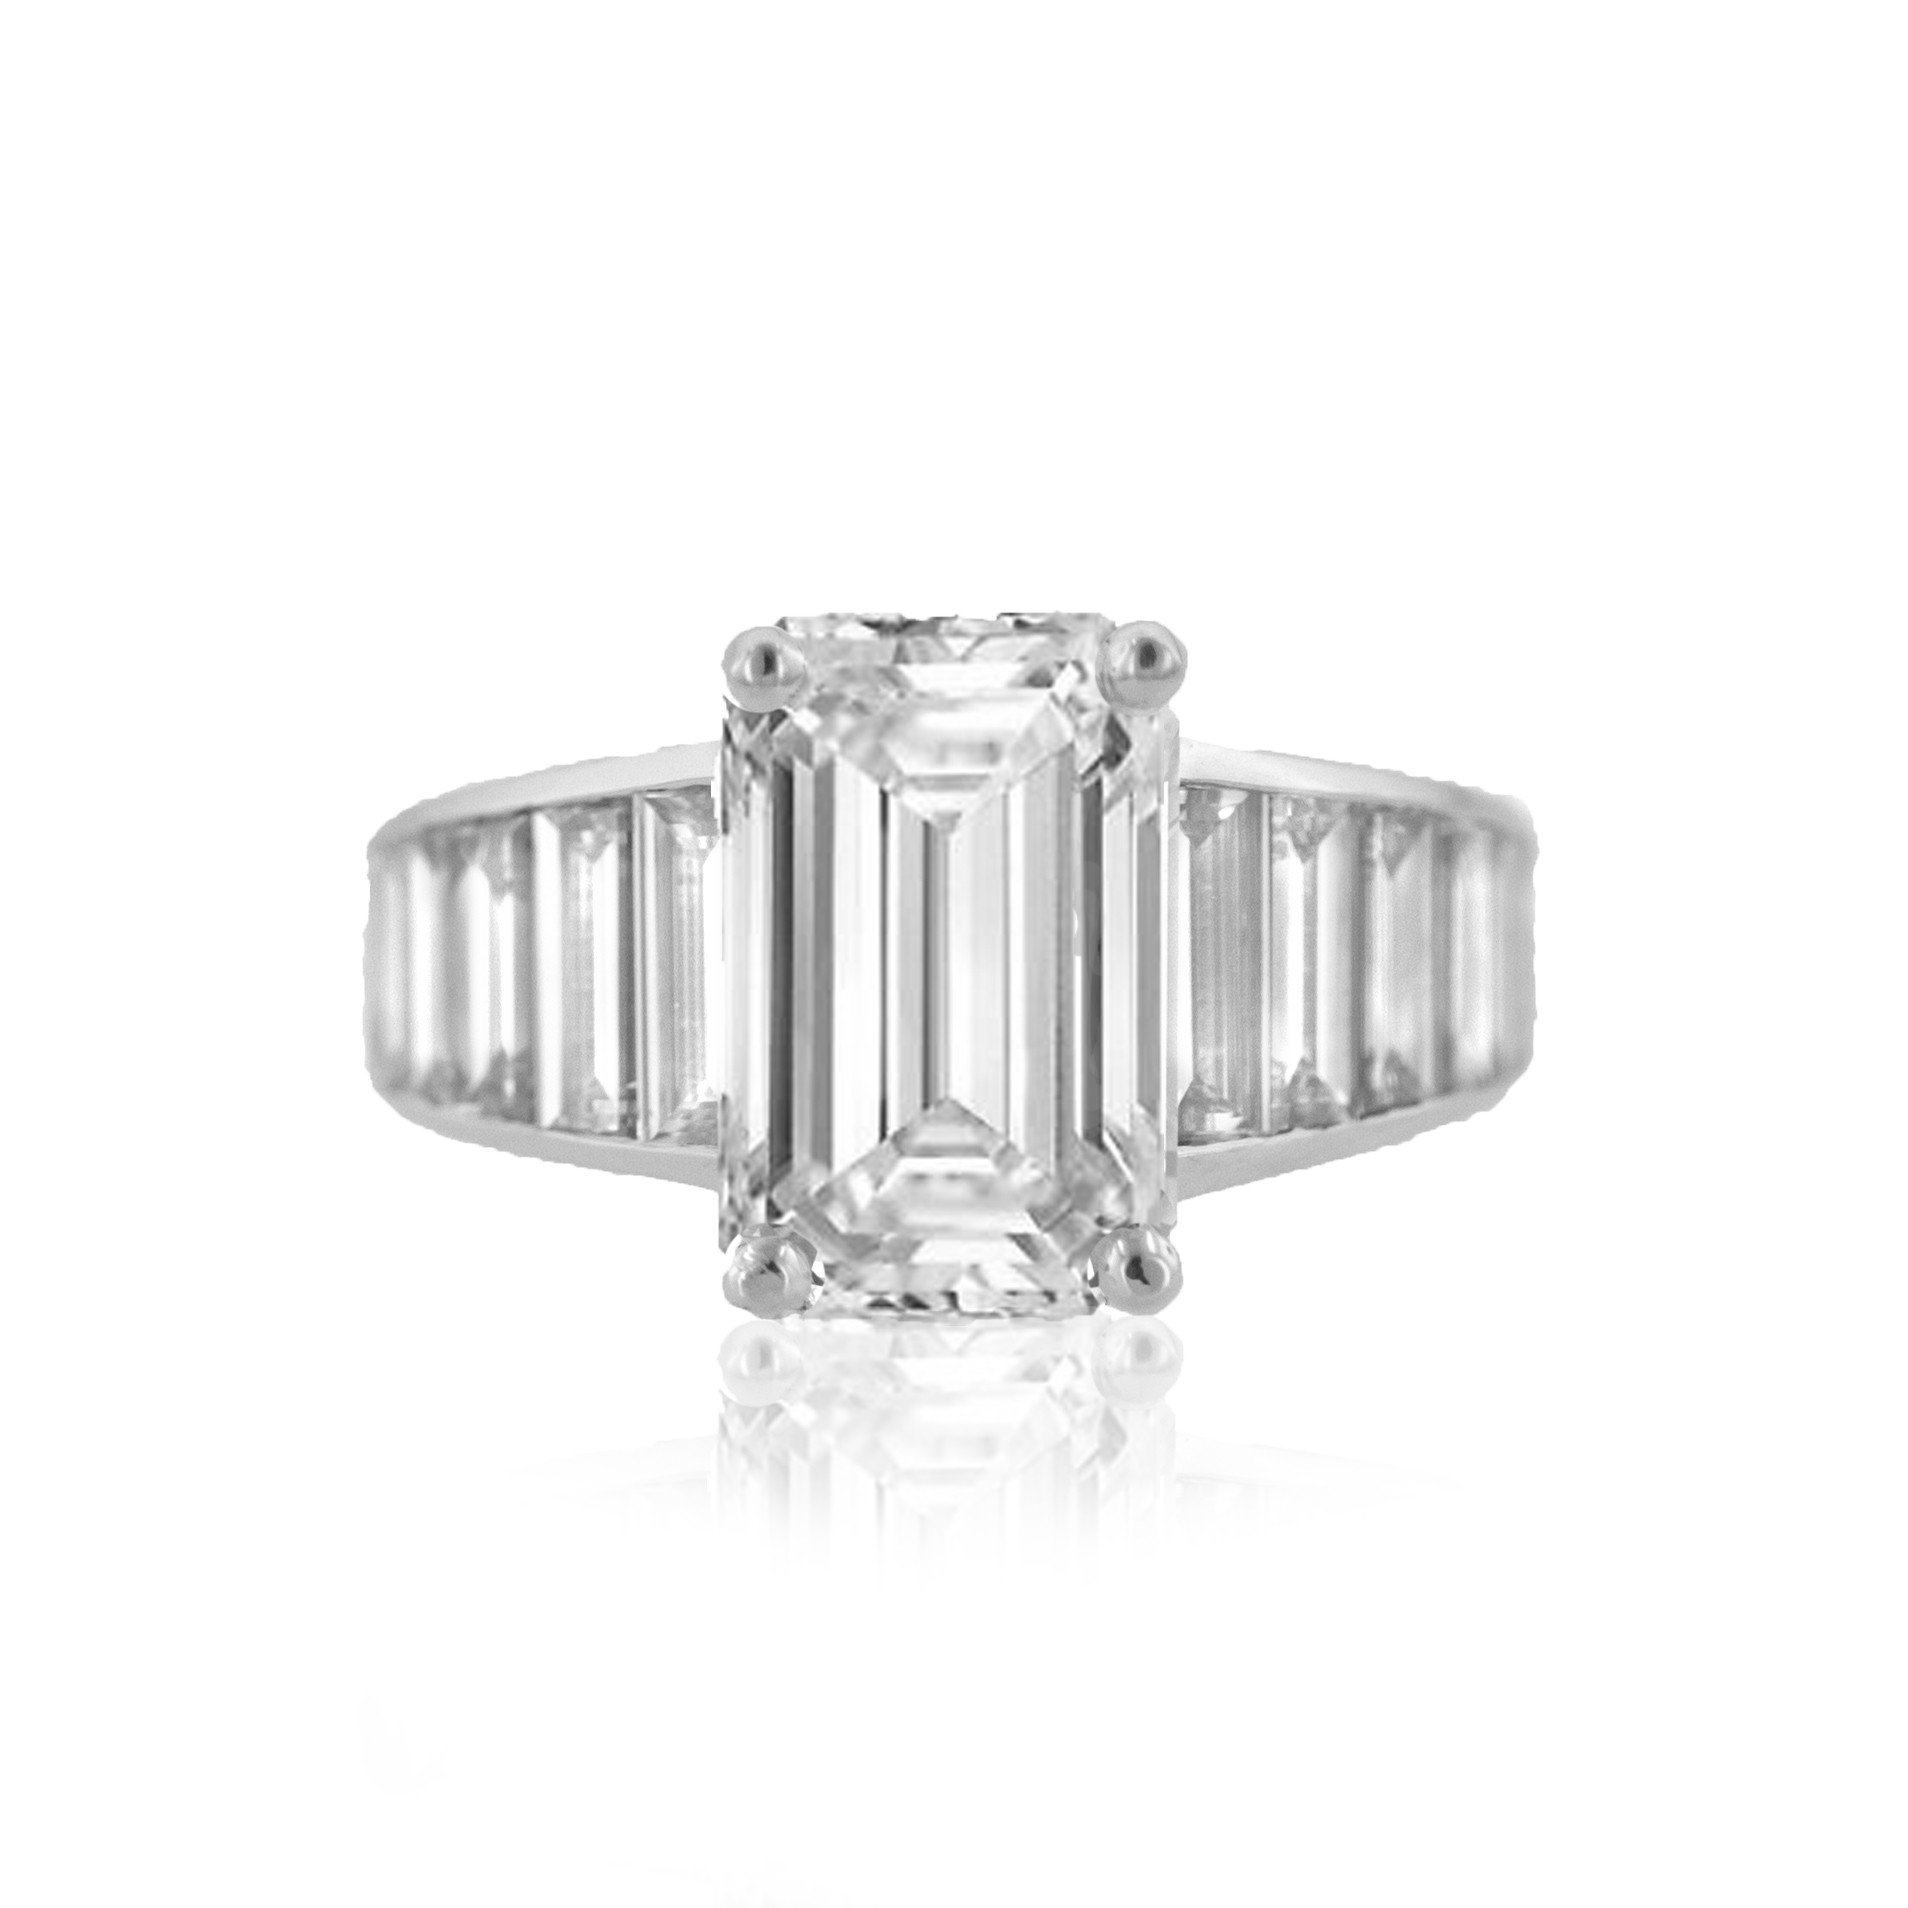 Extraordinary Emerald Cut Diamond Engagement Ring